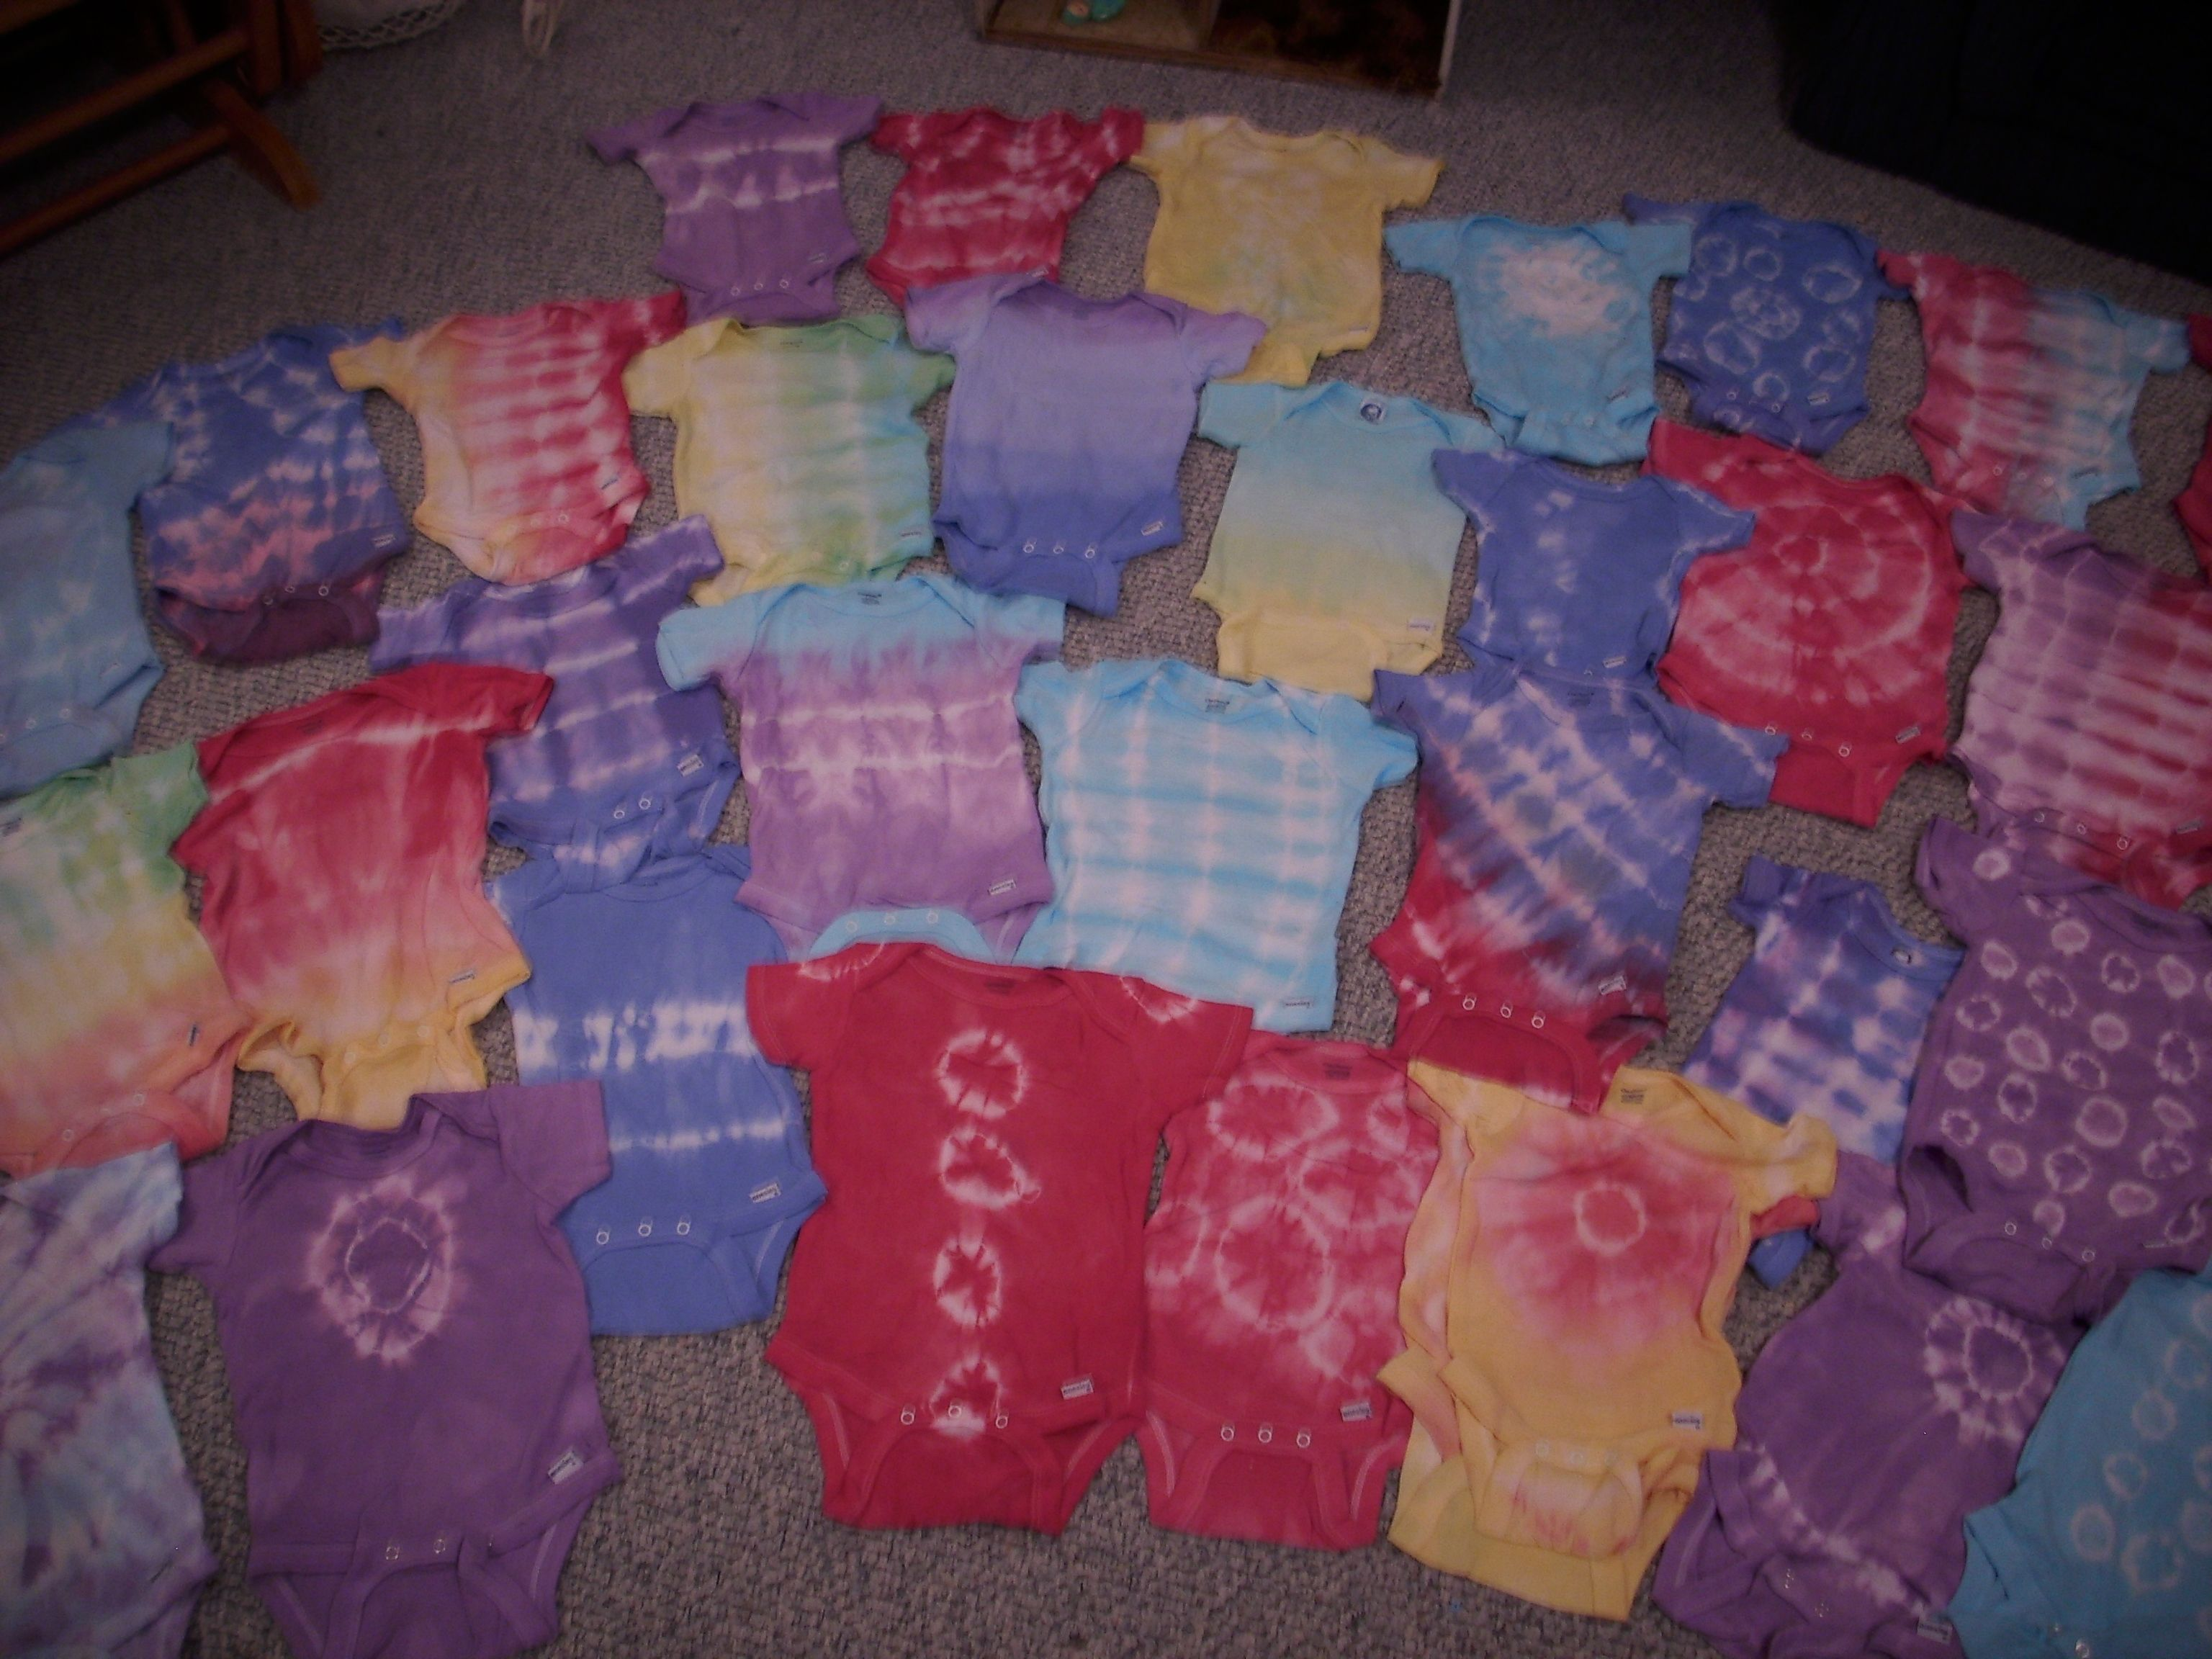 Tie-dyed baby onesies.  For your little hippie child.  All the colors of the rainbow